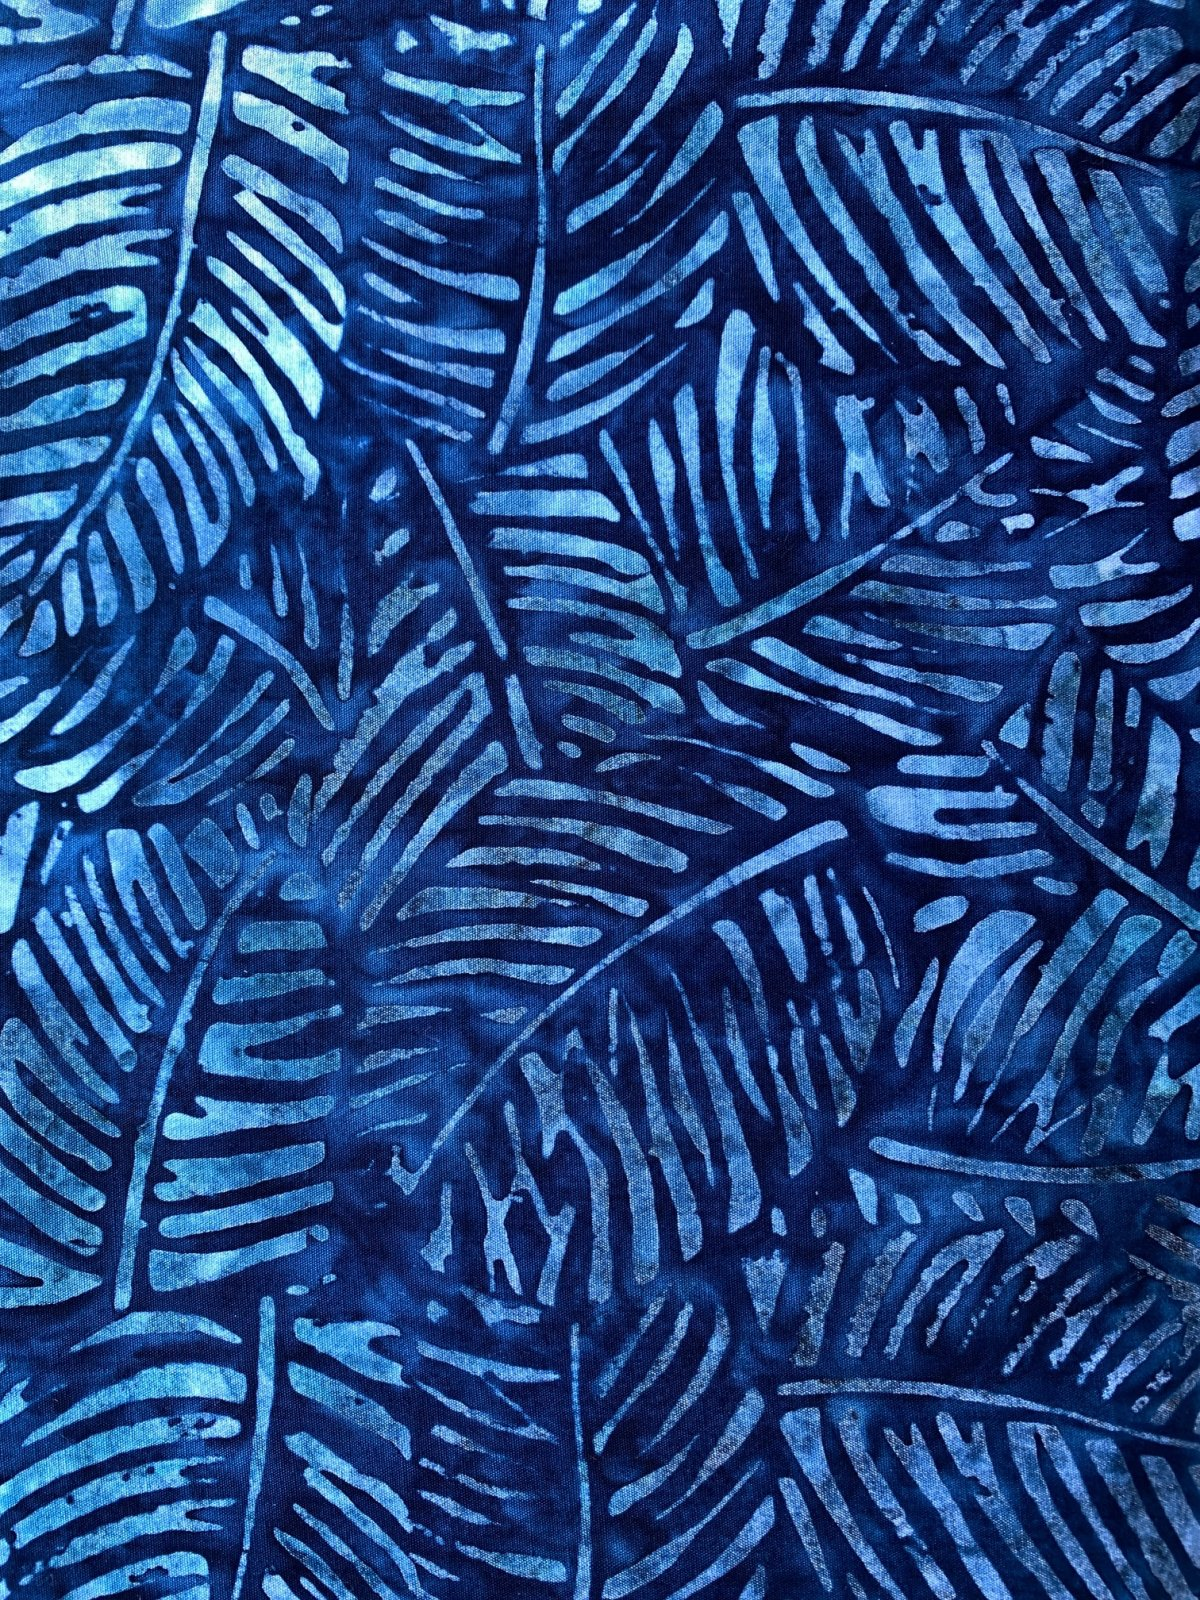 Batik by Mirah - Navy Notes